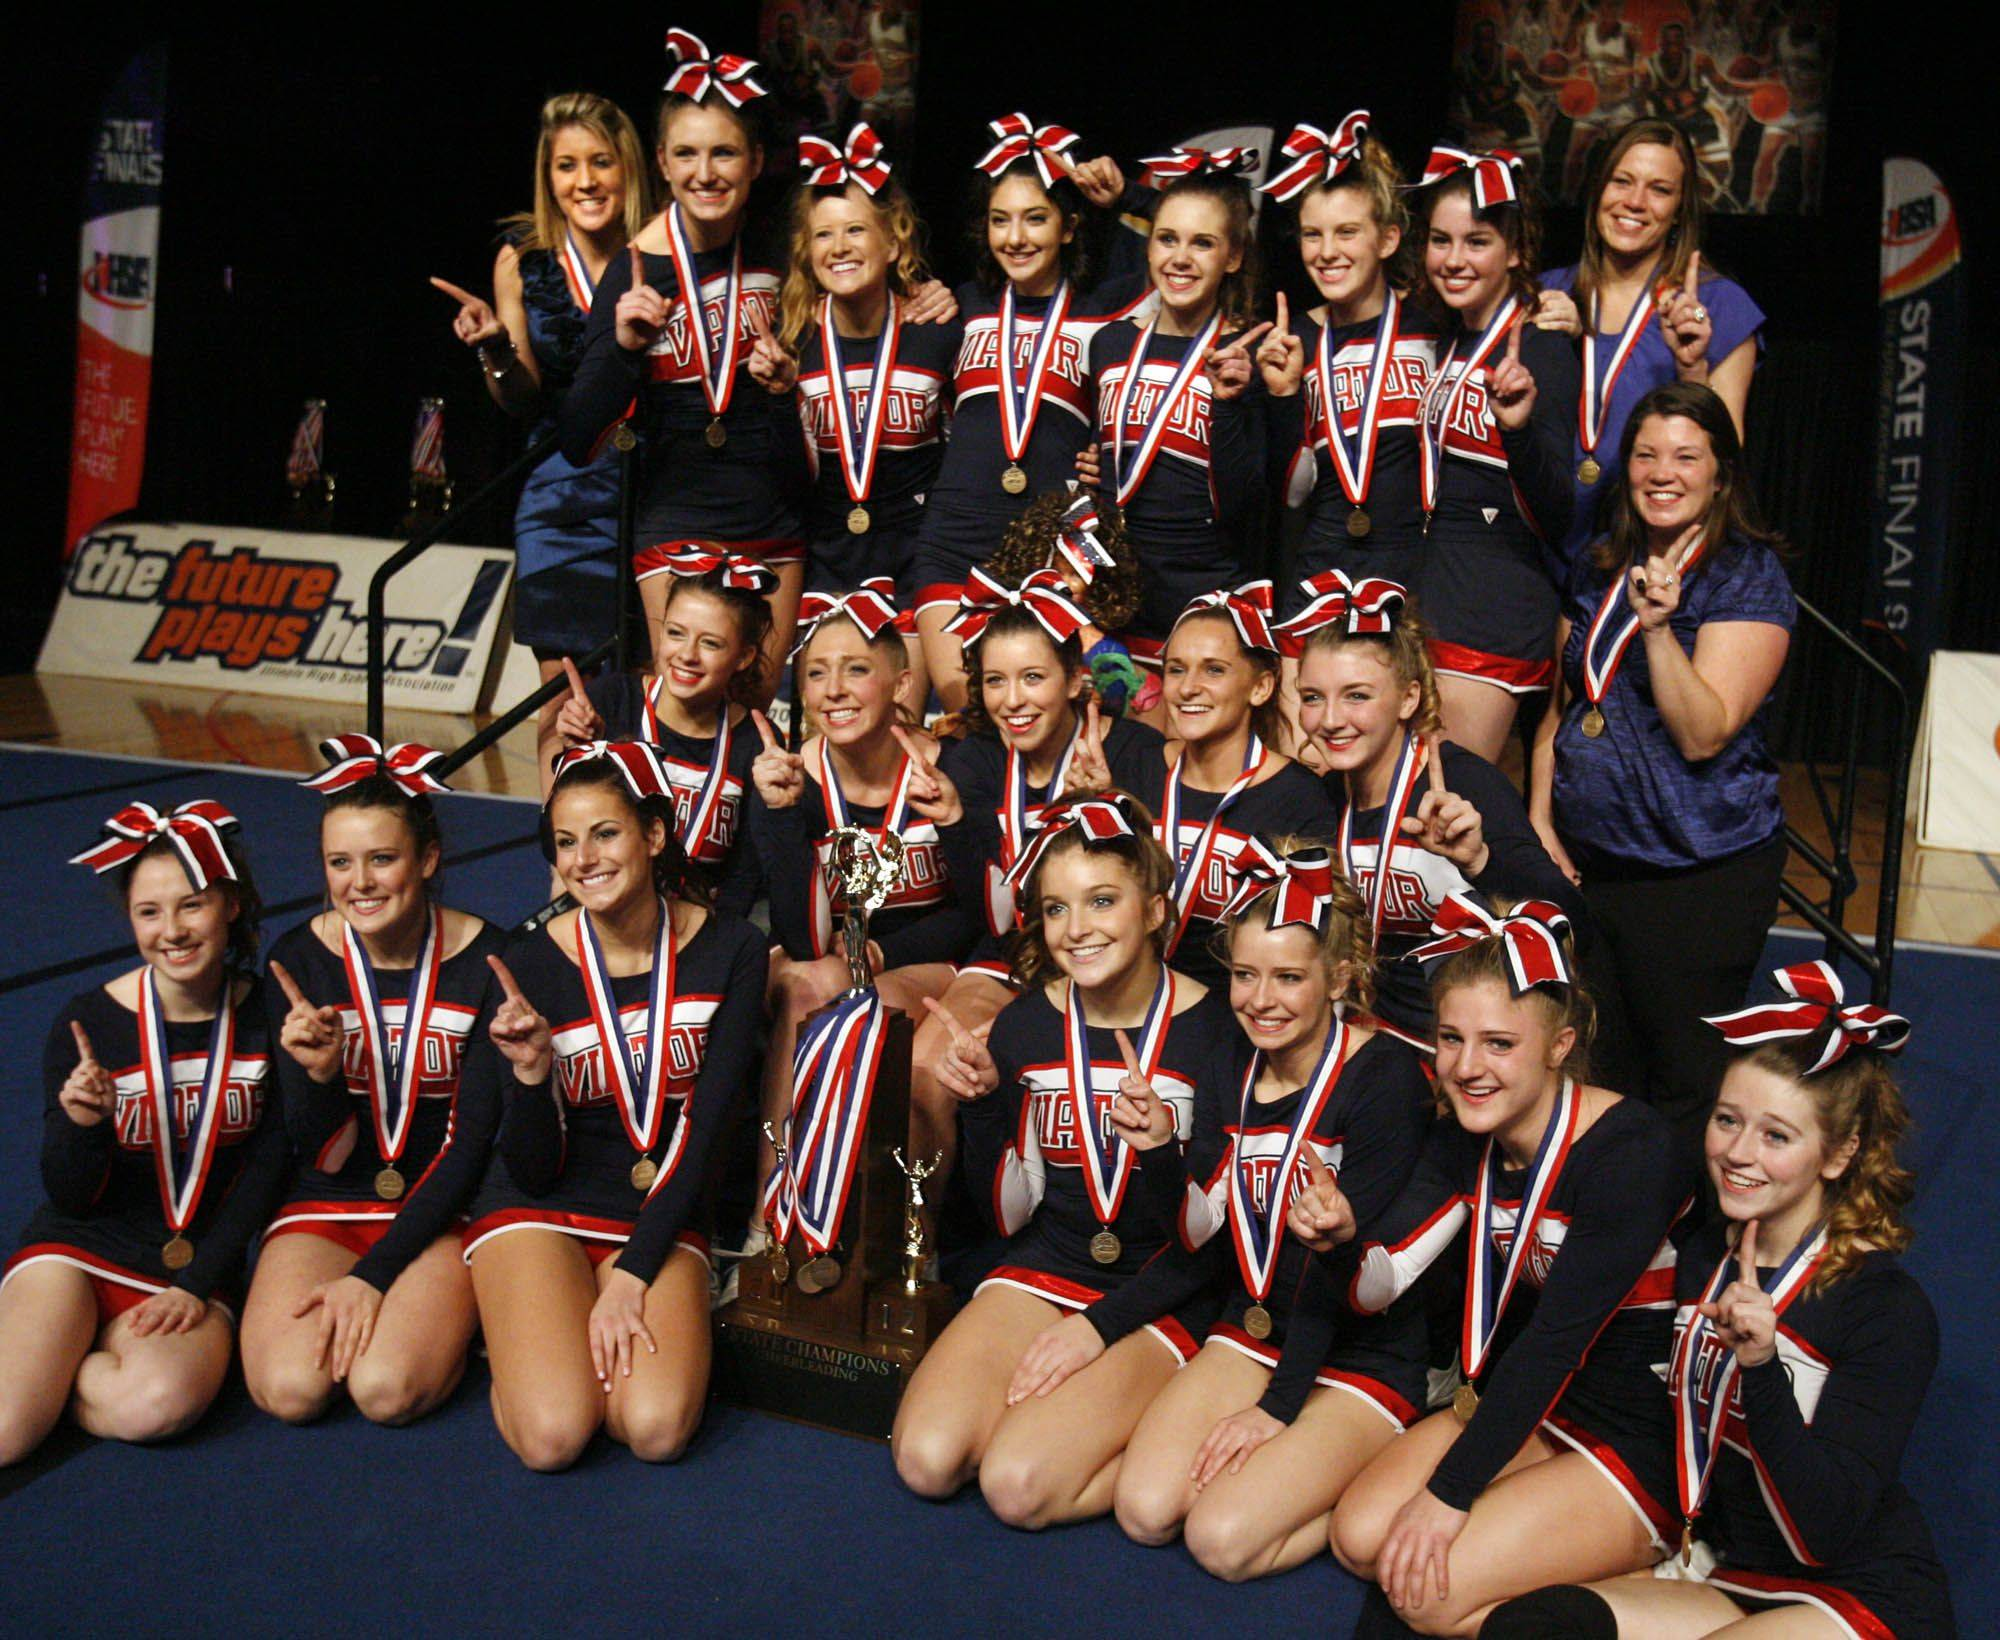 George Leclaire/gleclaire@dailyherald.comSt. Viator High School cheerleading team took first place at IHSA cheerleading state finals for the medium school category at U.S. Cellular Coliseum in Bloomington on Saturday.